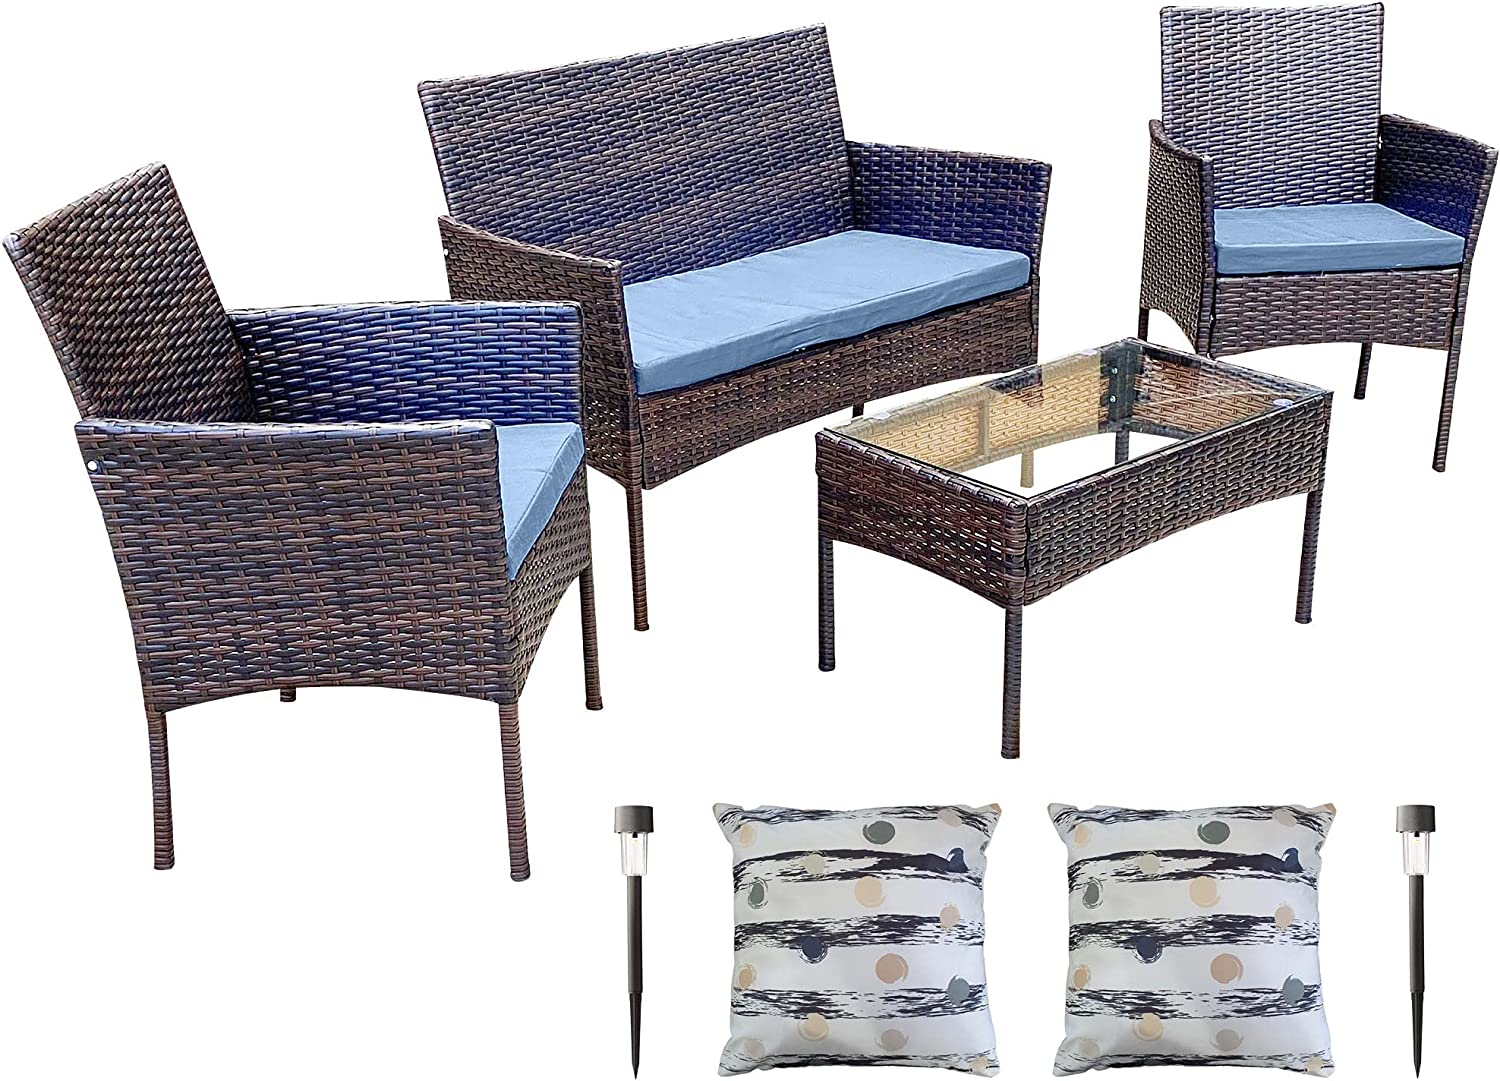 11 Piece Outdoor Furniture Patio Set Seating El Paso Deluxe Mall Table Cushion - C